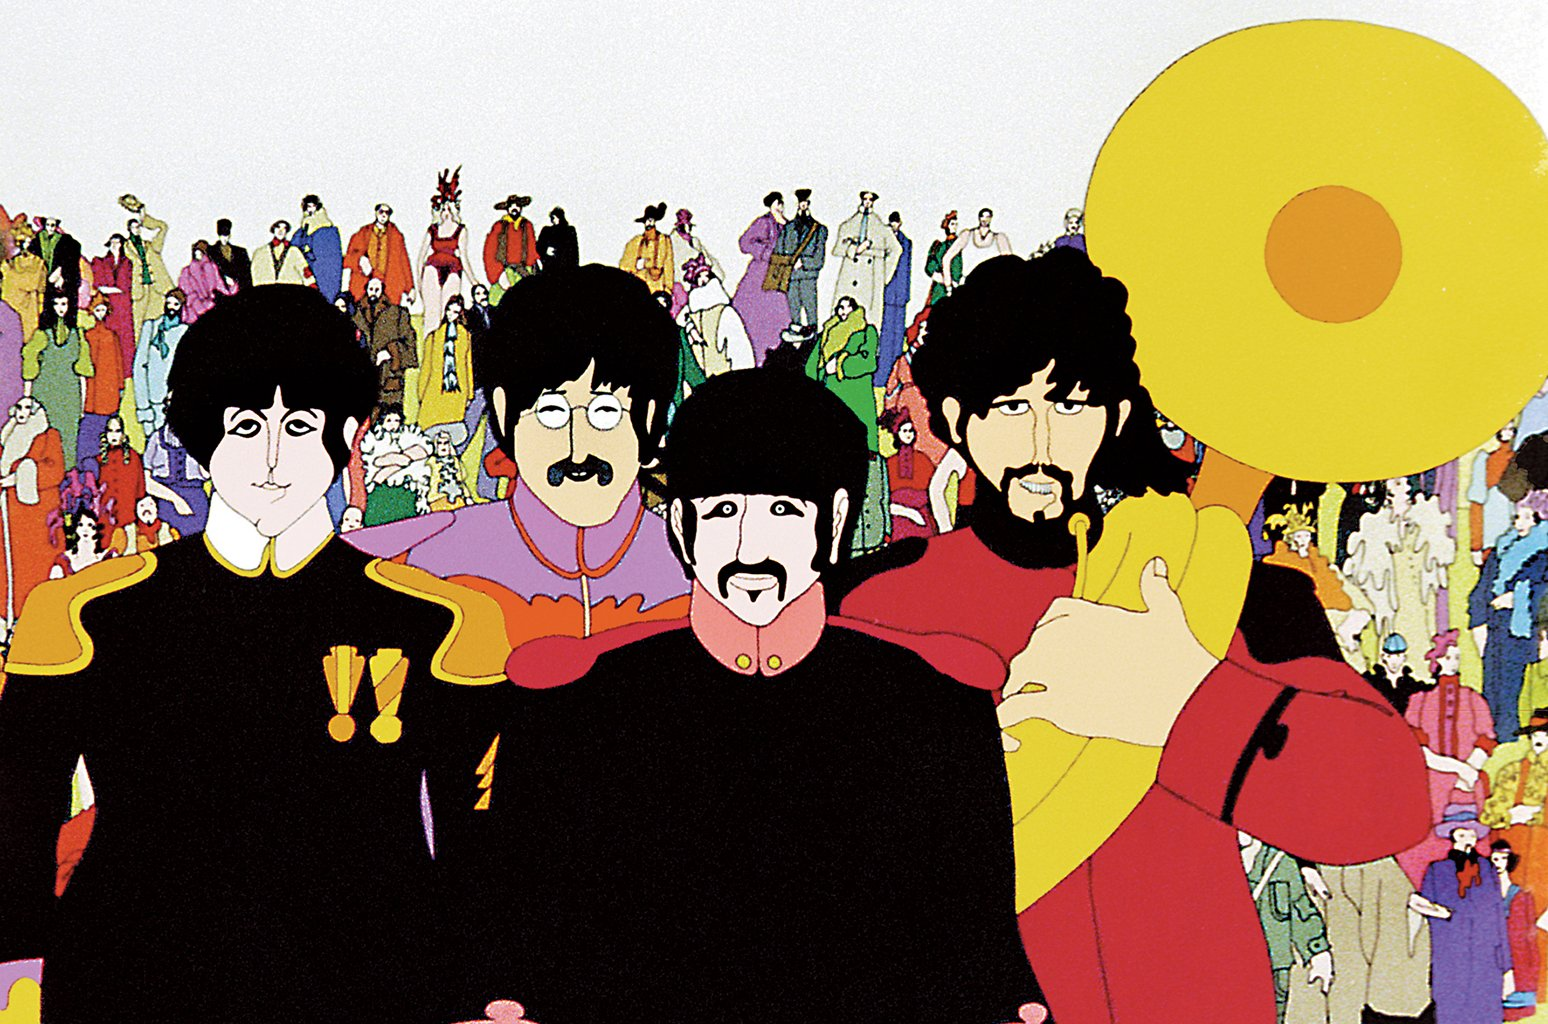 Reloaded twaddle – RT @billboard: Restorer of Beatles film Yellow Submarine talks state of the a...